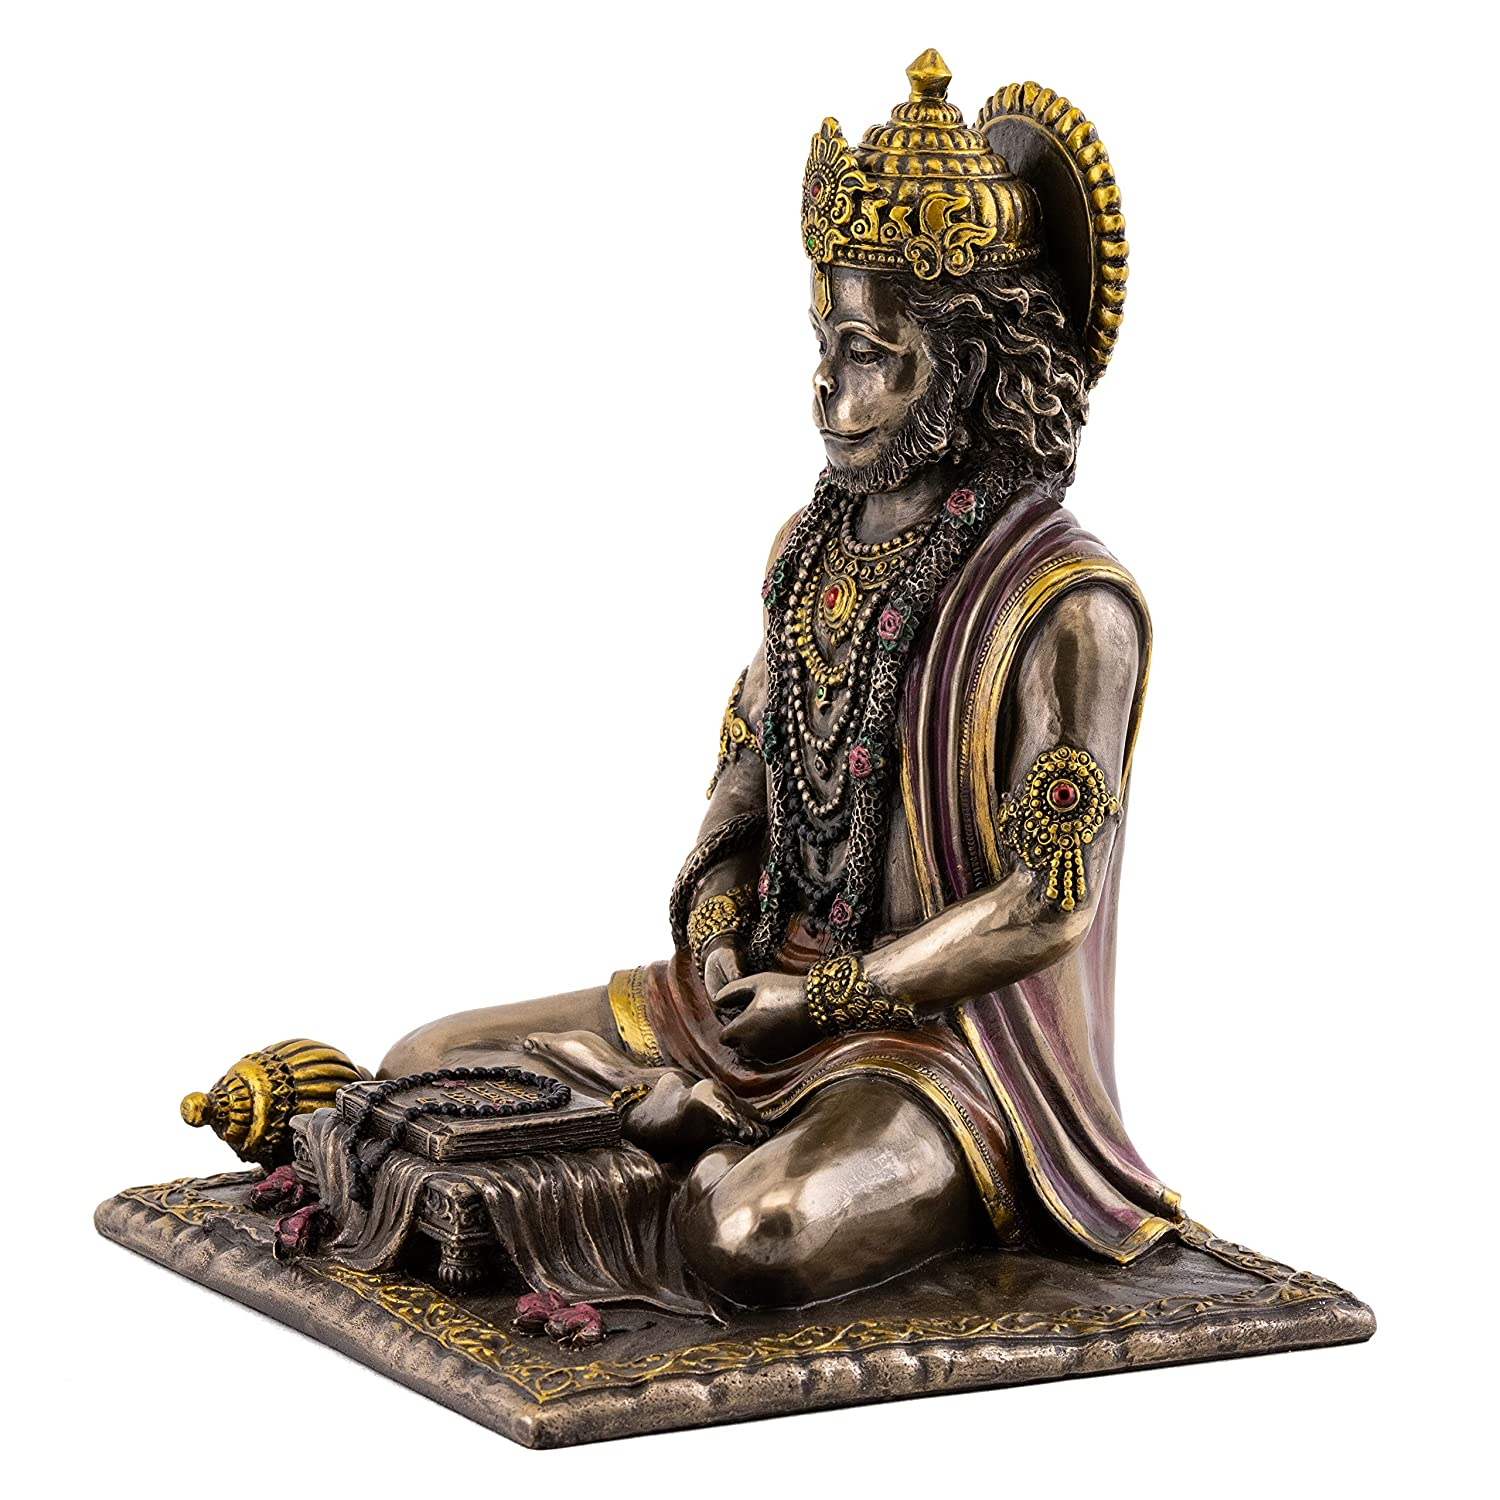 Top Collection Hanuman Statue – Hindu God of Strength Sculpture in Premium Cold Cast Bronze- 7.5-Inch Collectible Figurine